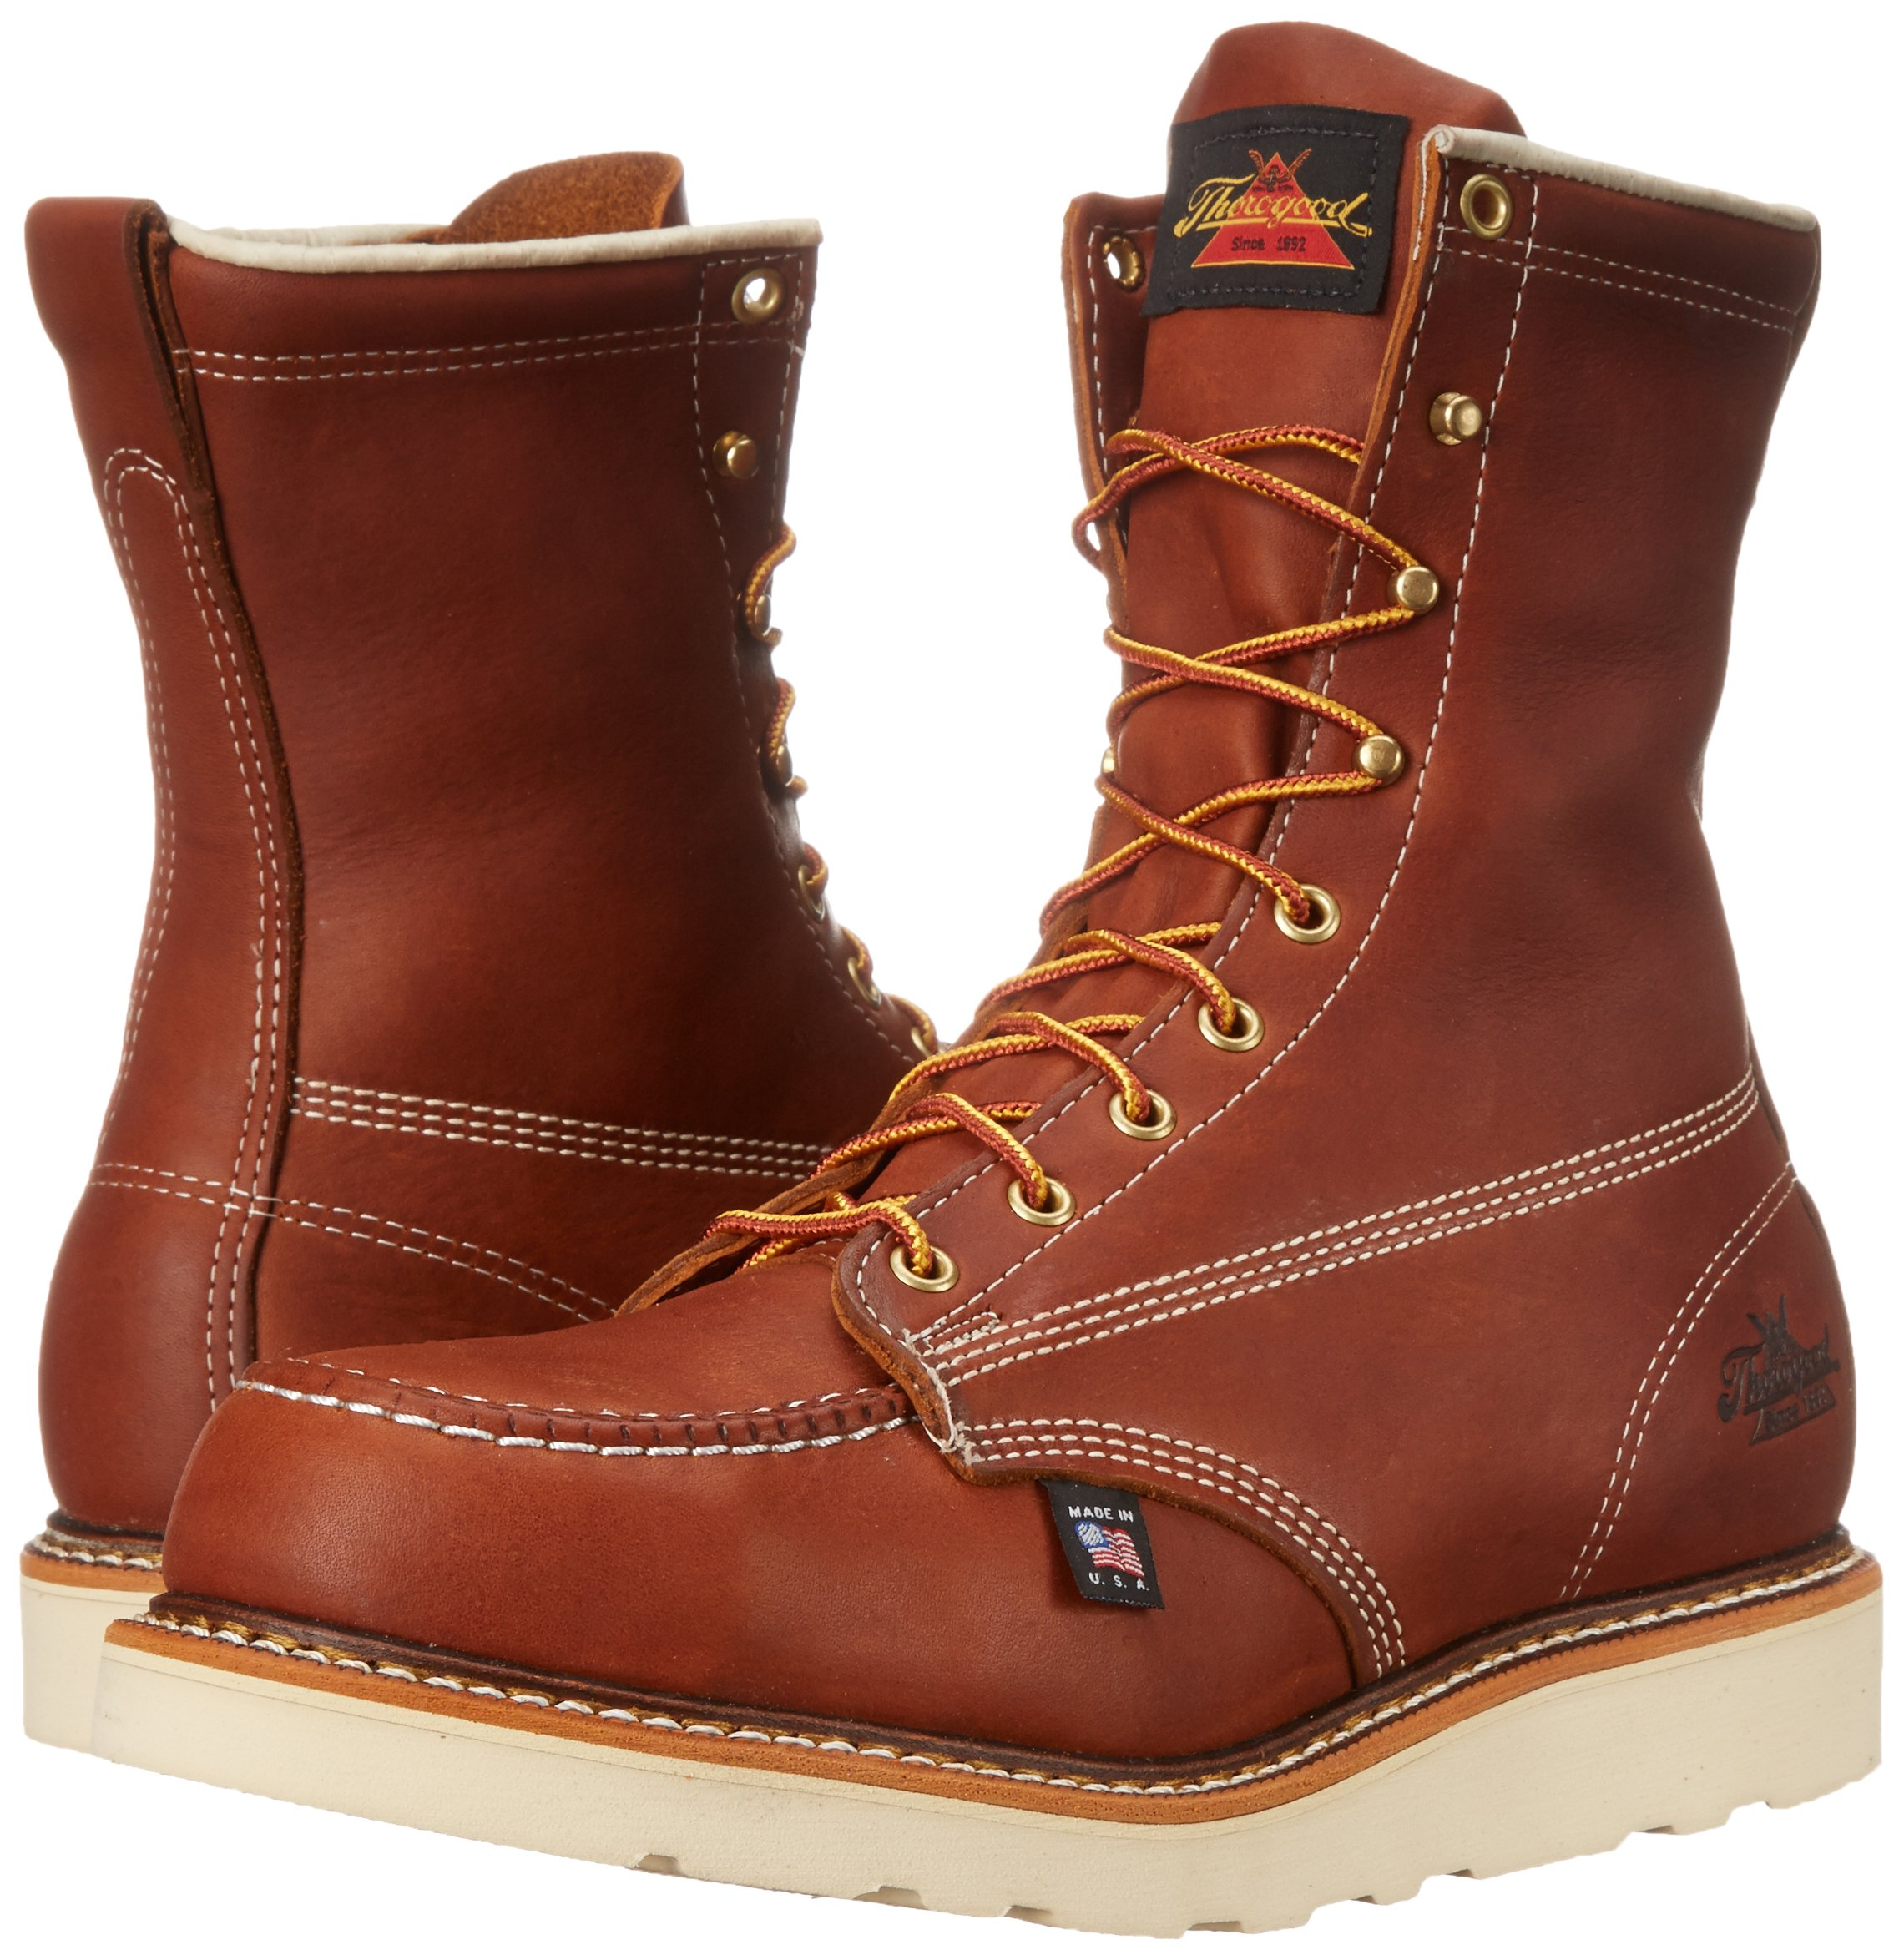 Thorogood Heritage 8'' Safety Toe Work Boot, Tobacco Oil Tanned, 10 EE US by Thorogood (Image #6)